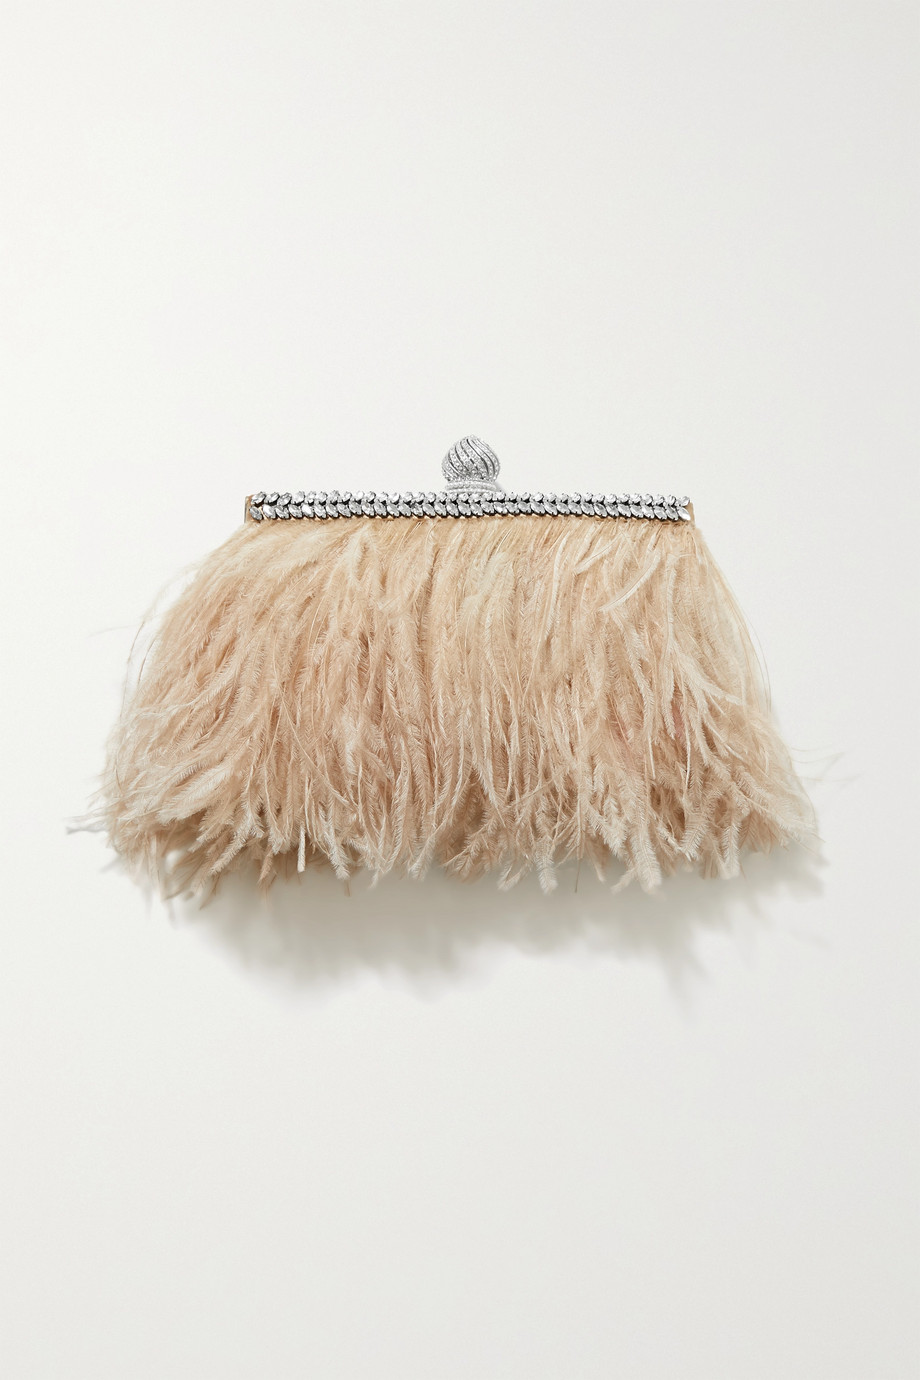 Jimmy Choo Celeste crystal-embellished feather-trimmed satin clutch